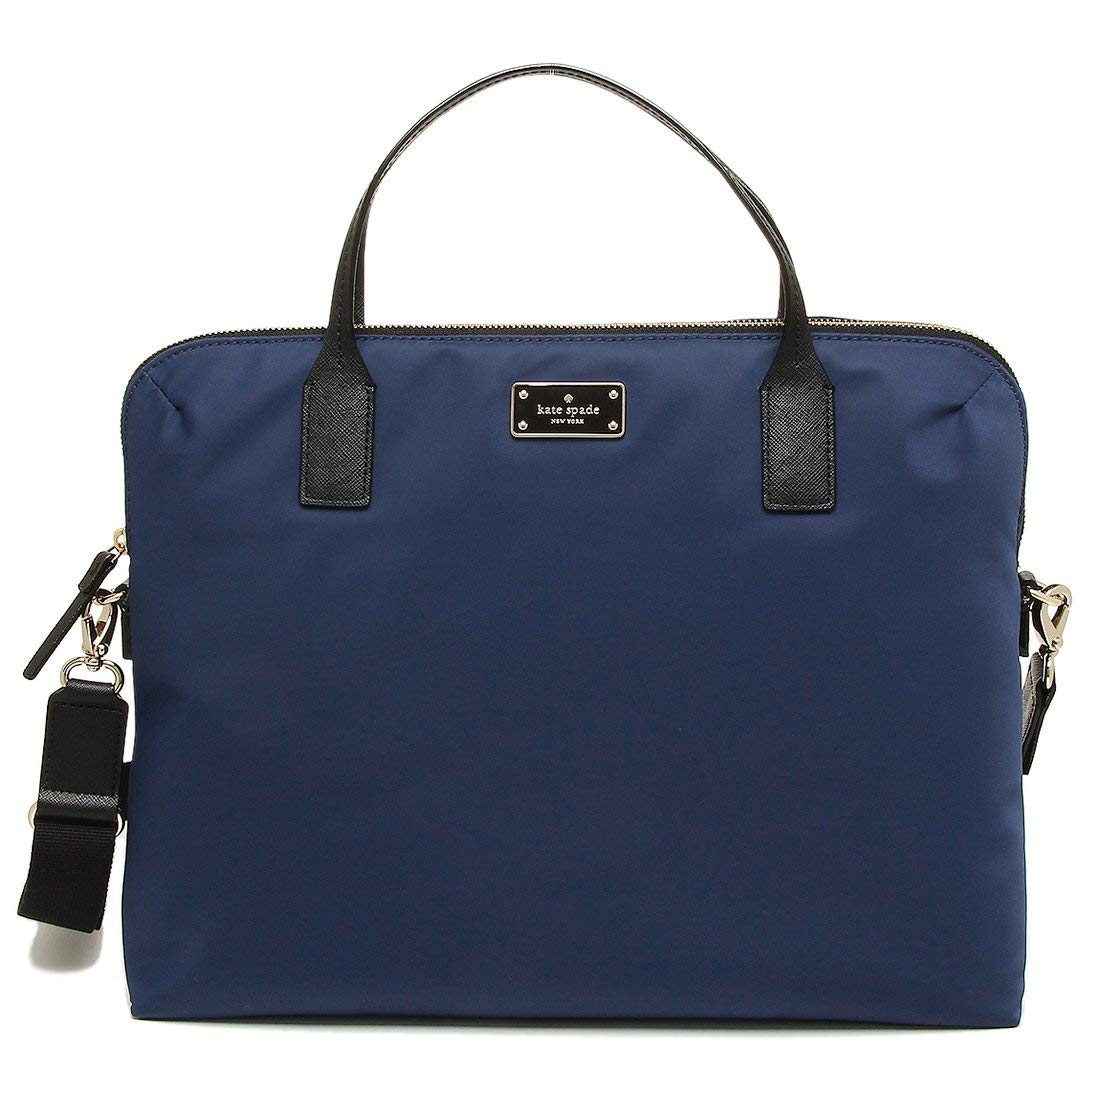 Kate Spade Blake Avenue Daveney Laptop Bag Oceanic Blue # WKRU3617